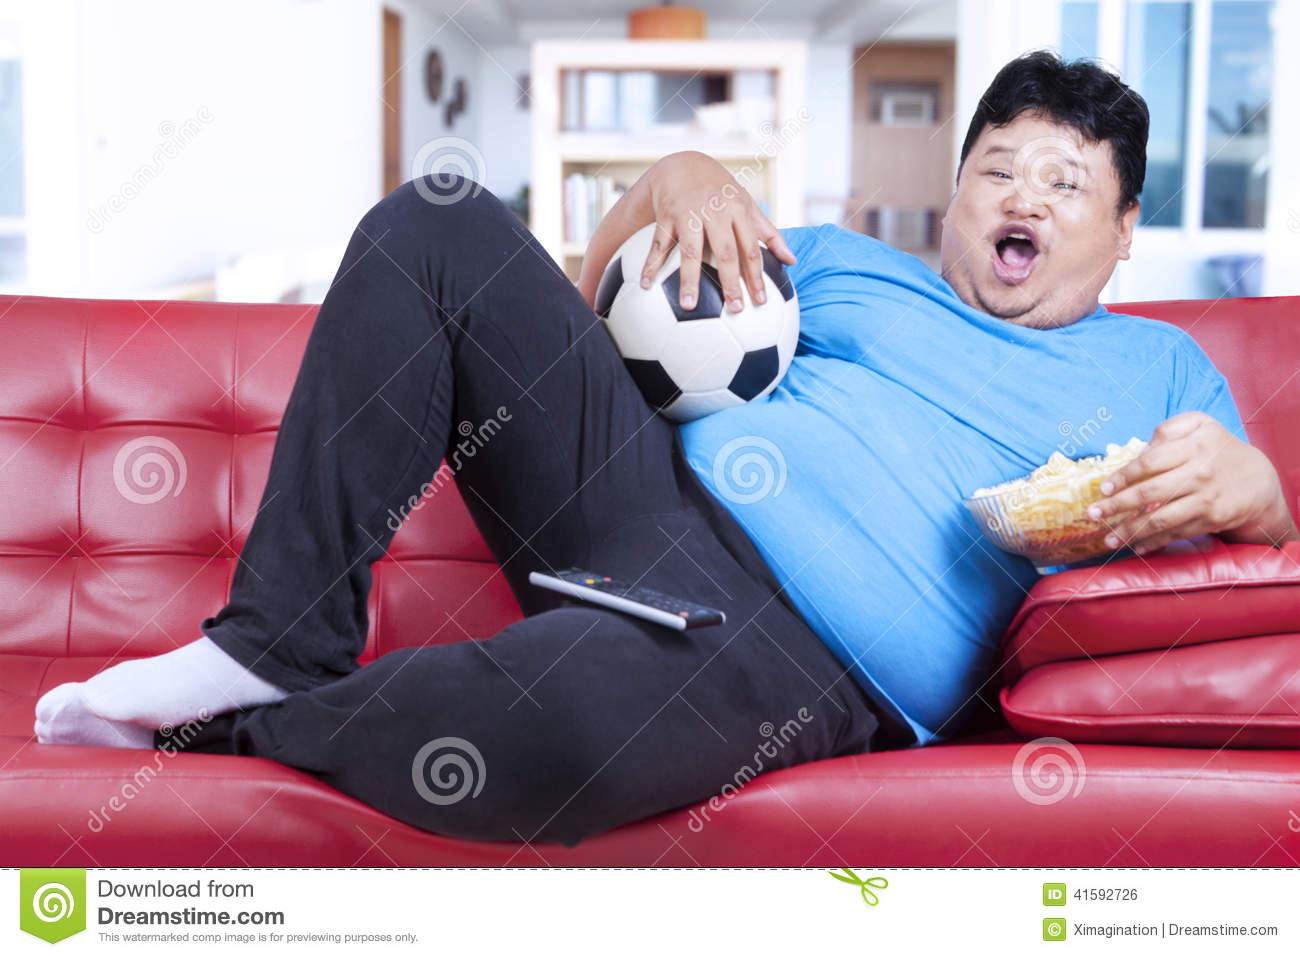 Fat Mant Watching Soccer Match On Tv Stock Photo - Image: 41592726